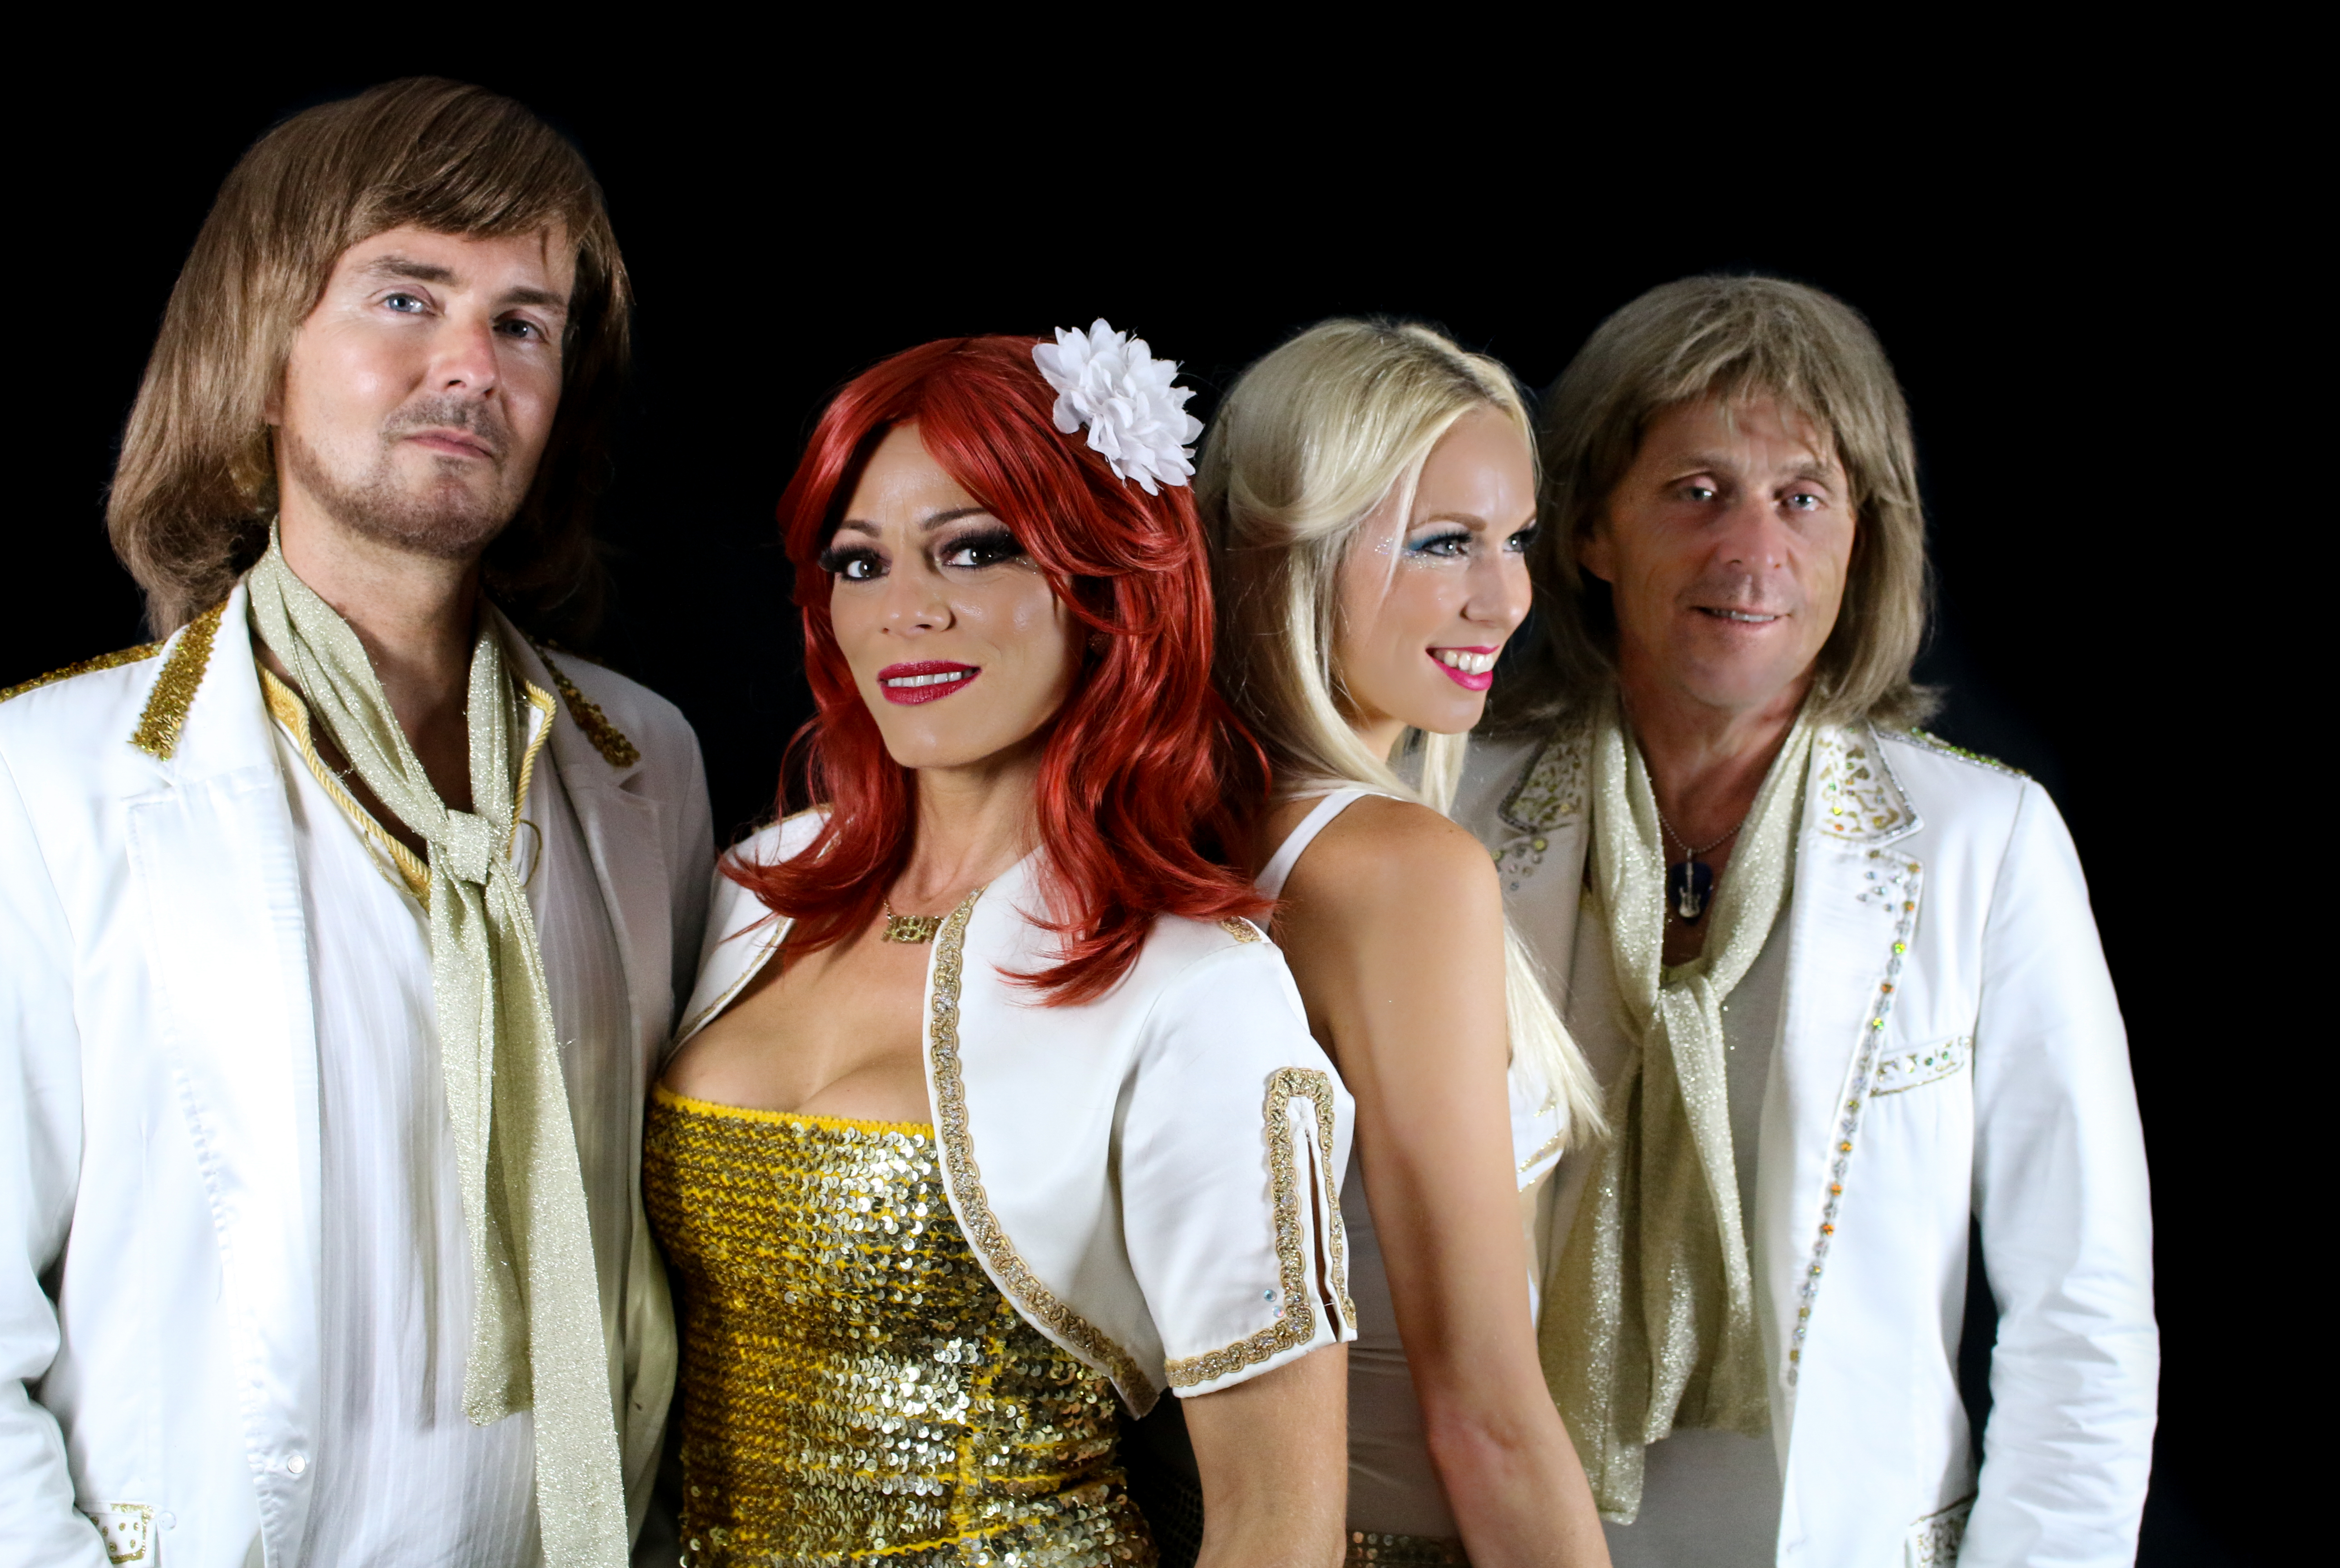 Abba Band Abba Tribute Band Abba Chique Professional Tribute To Abba